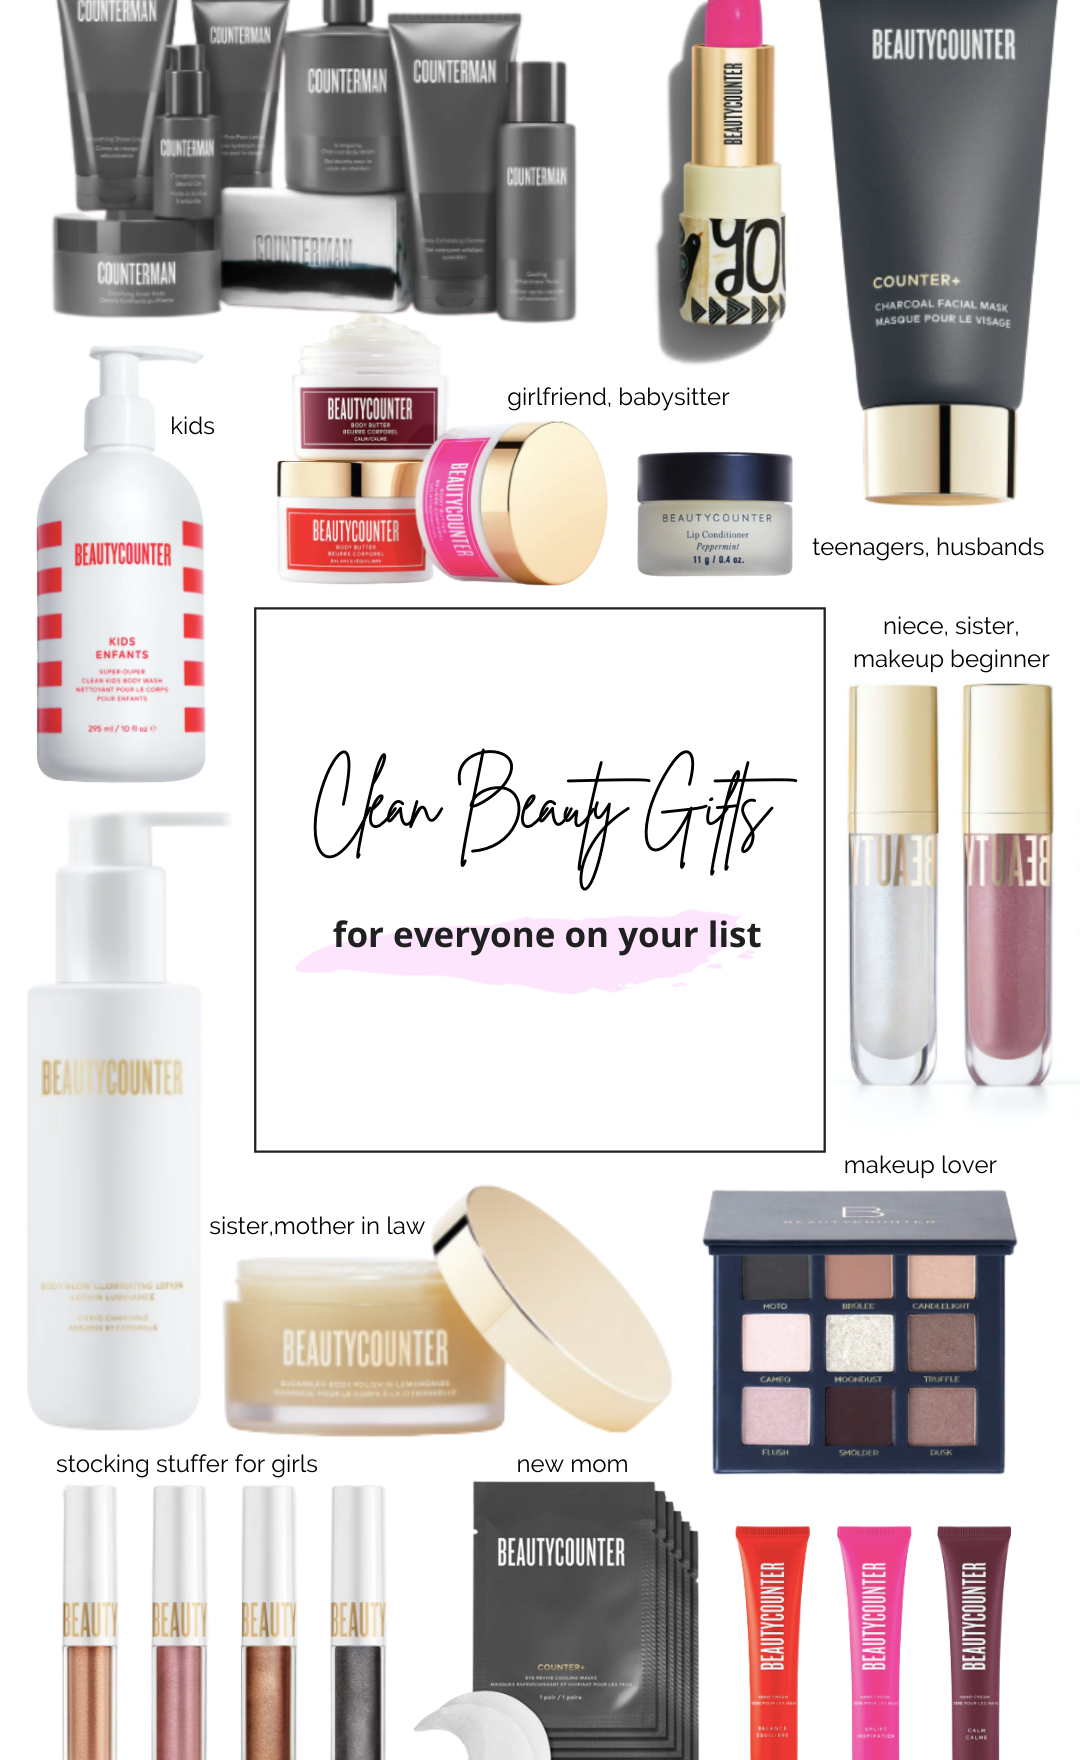 THE BEST CLEAN BEAUTY GIFTS FOR EVERYONE ON YOUR LIST